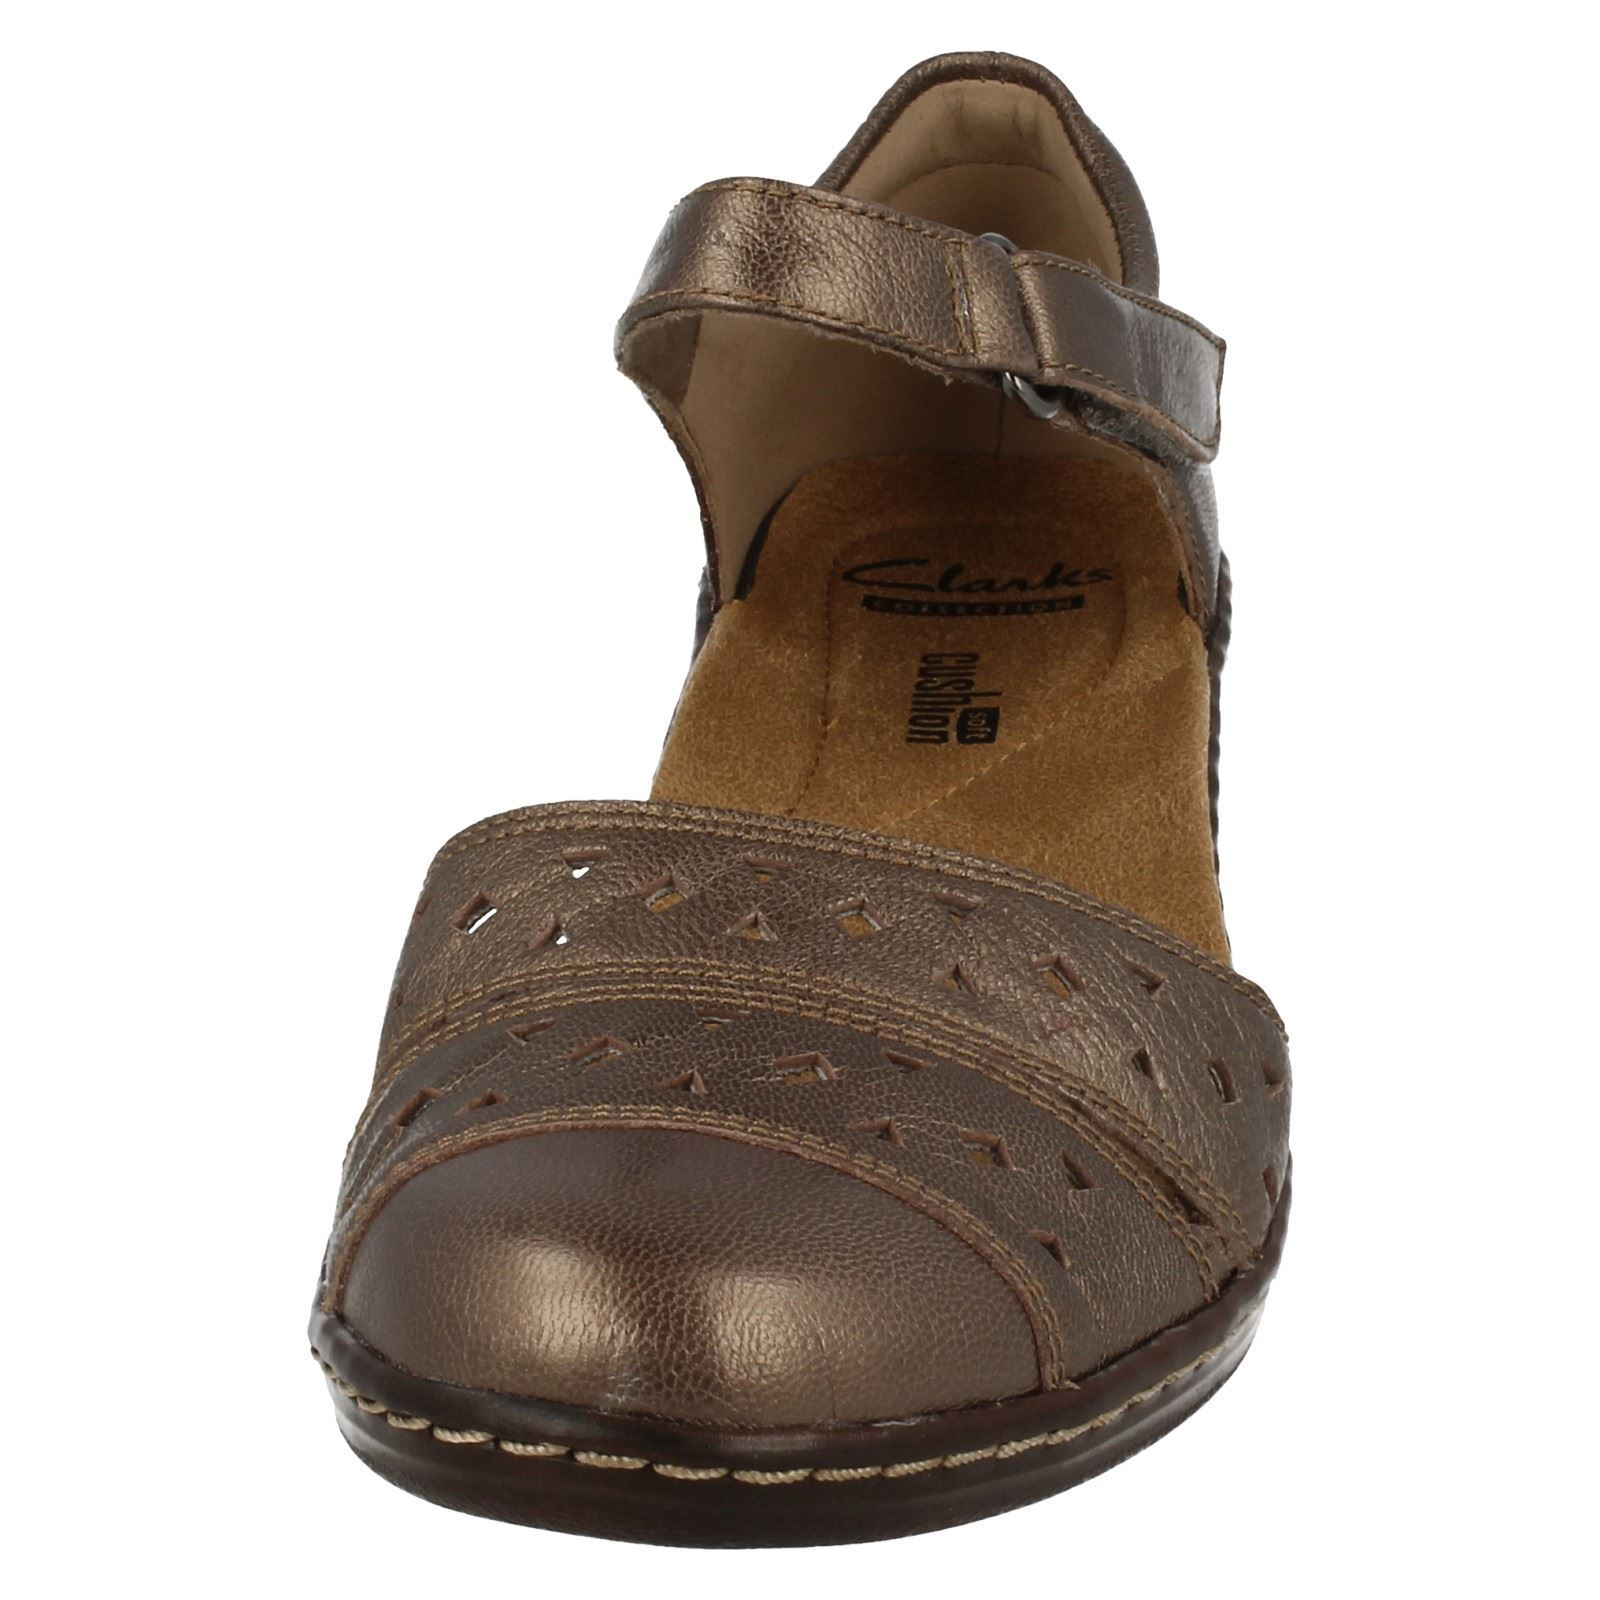 Ladies Clarks Casual Shoes The Style